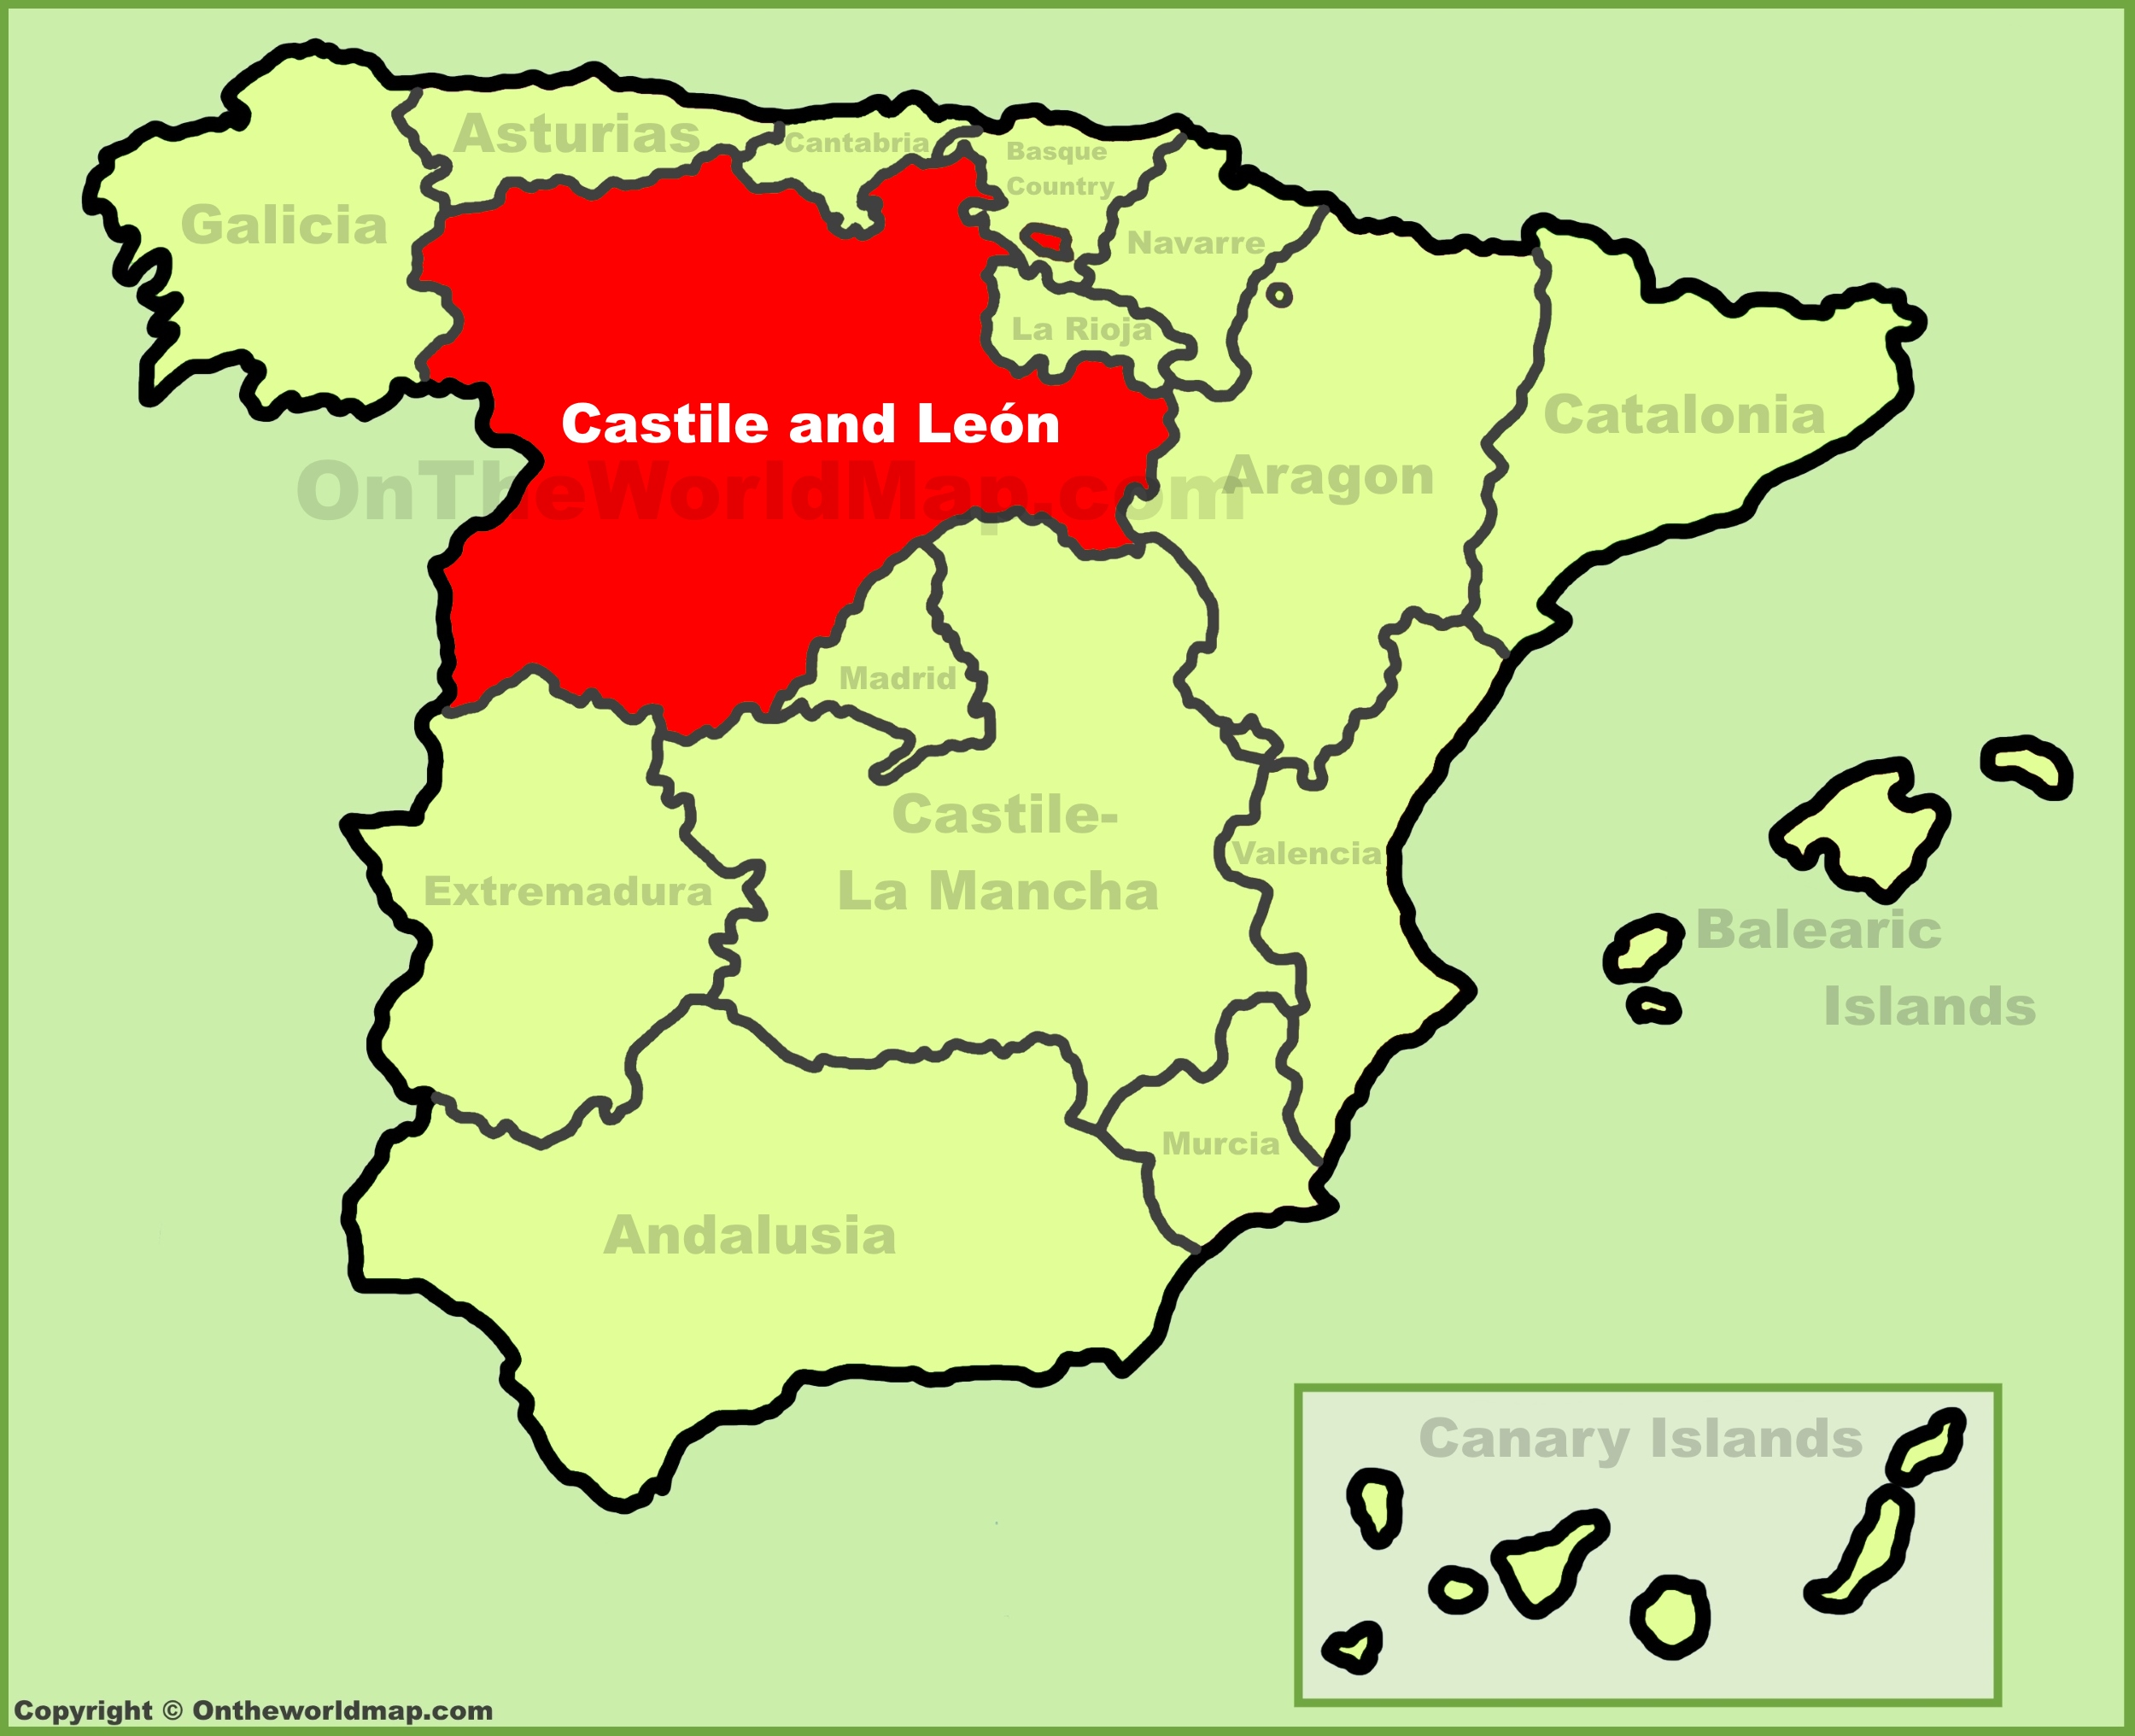 castile-and-leon-location-on-the-spain-map Castile Map on kingdom of galicia, iberian peninsula map, south valley map, kingdom of navarre map, crown of aragon, valencian community map, extremadura map, clayton map, byzantine empire map, bilbao map, isabella of castile, setenil de las bodegas map, kingdom of sardinia, kingdom of france map, swabia map, aragon map, kingdom of asturias, kingdom of england map, alfonso x of castile, habsburg spain, eden map, kingdom of aragon, aquitaine map, archduchy of austria map, kingdom of navarre, ancient iberia map, granada map, pike map, covington map, ferdinand iii of castile, crown of castile, kingdom of portugal,